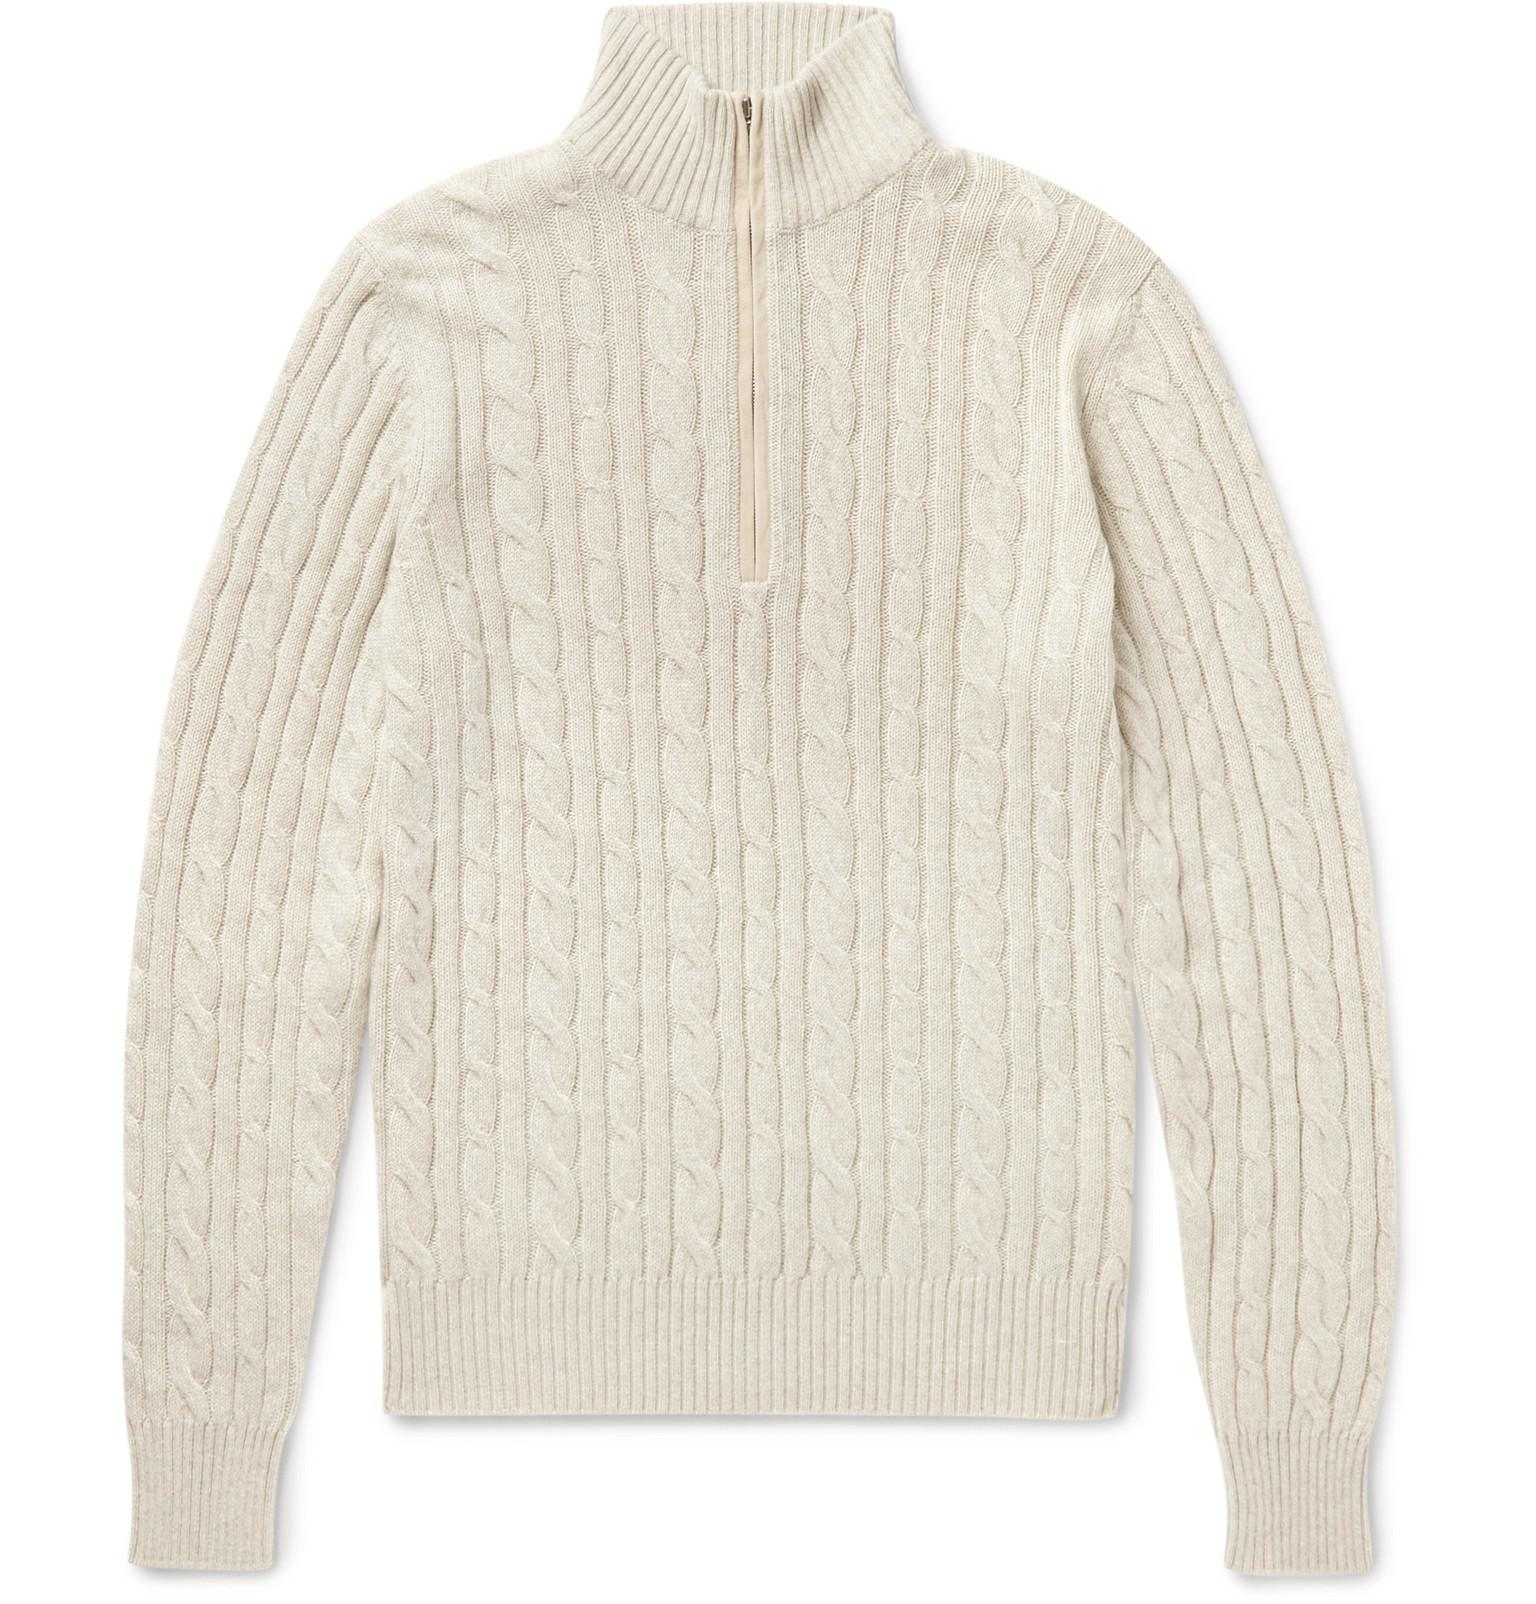 Loro piana Suede-trimmed Cable-knit Baby Cashmere Half-zip Sweater ...